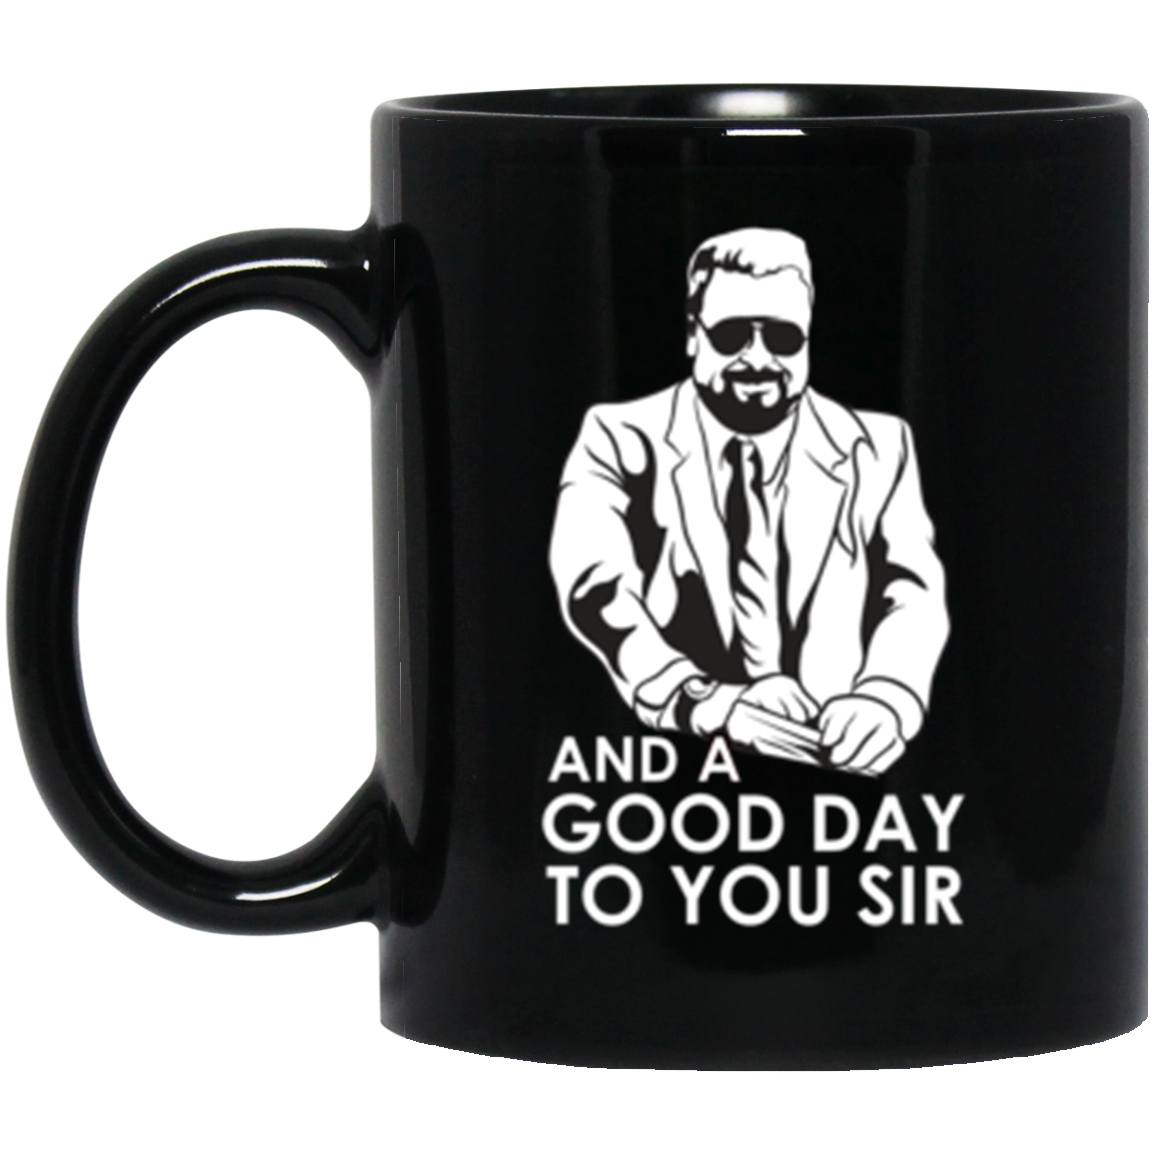 Drinkware - Good Day Mug 11oz (2-sided)